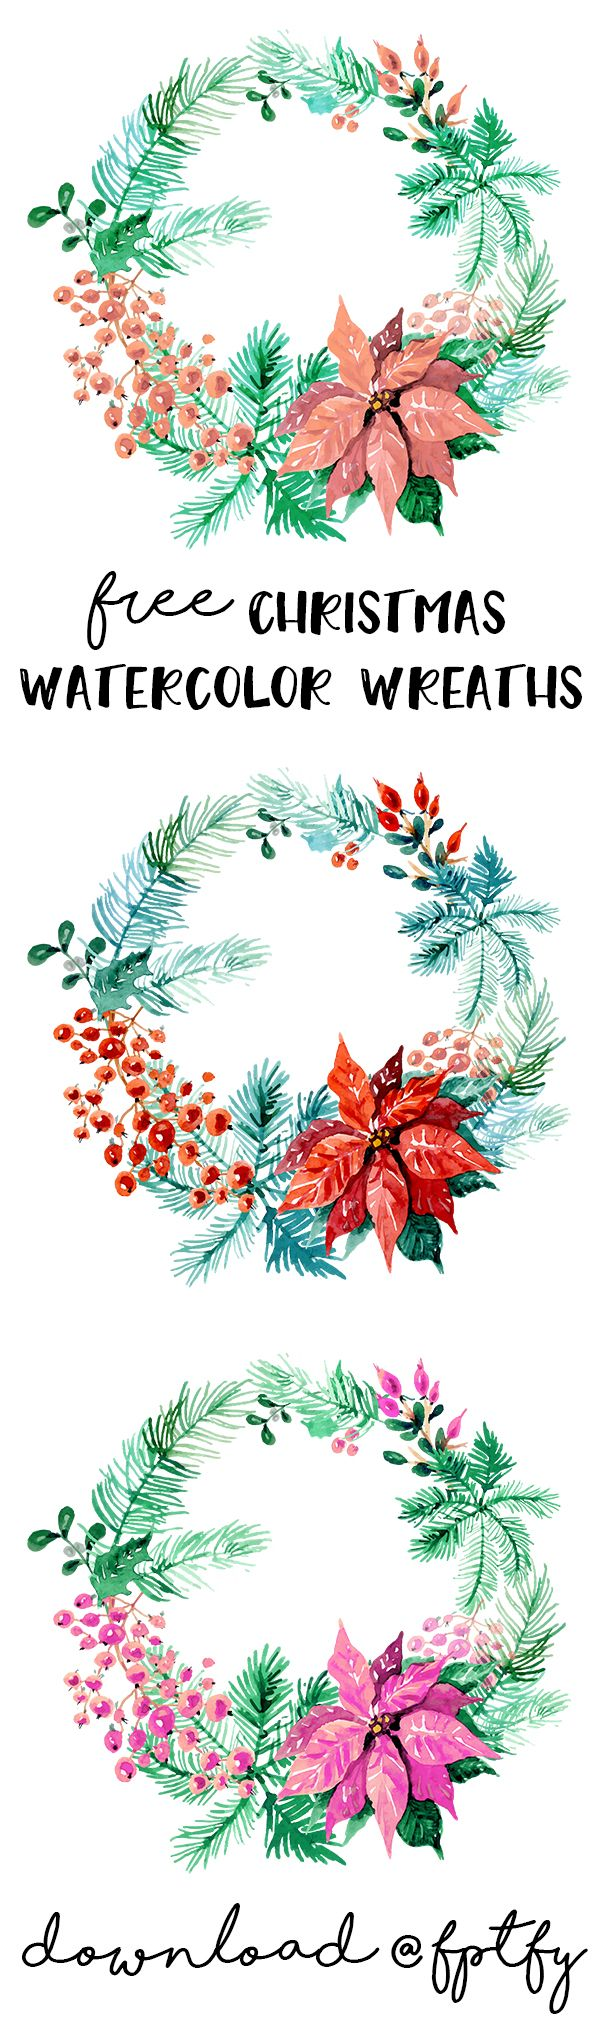 Free christmas watercolor wreaths